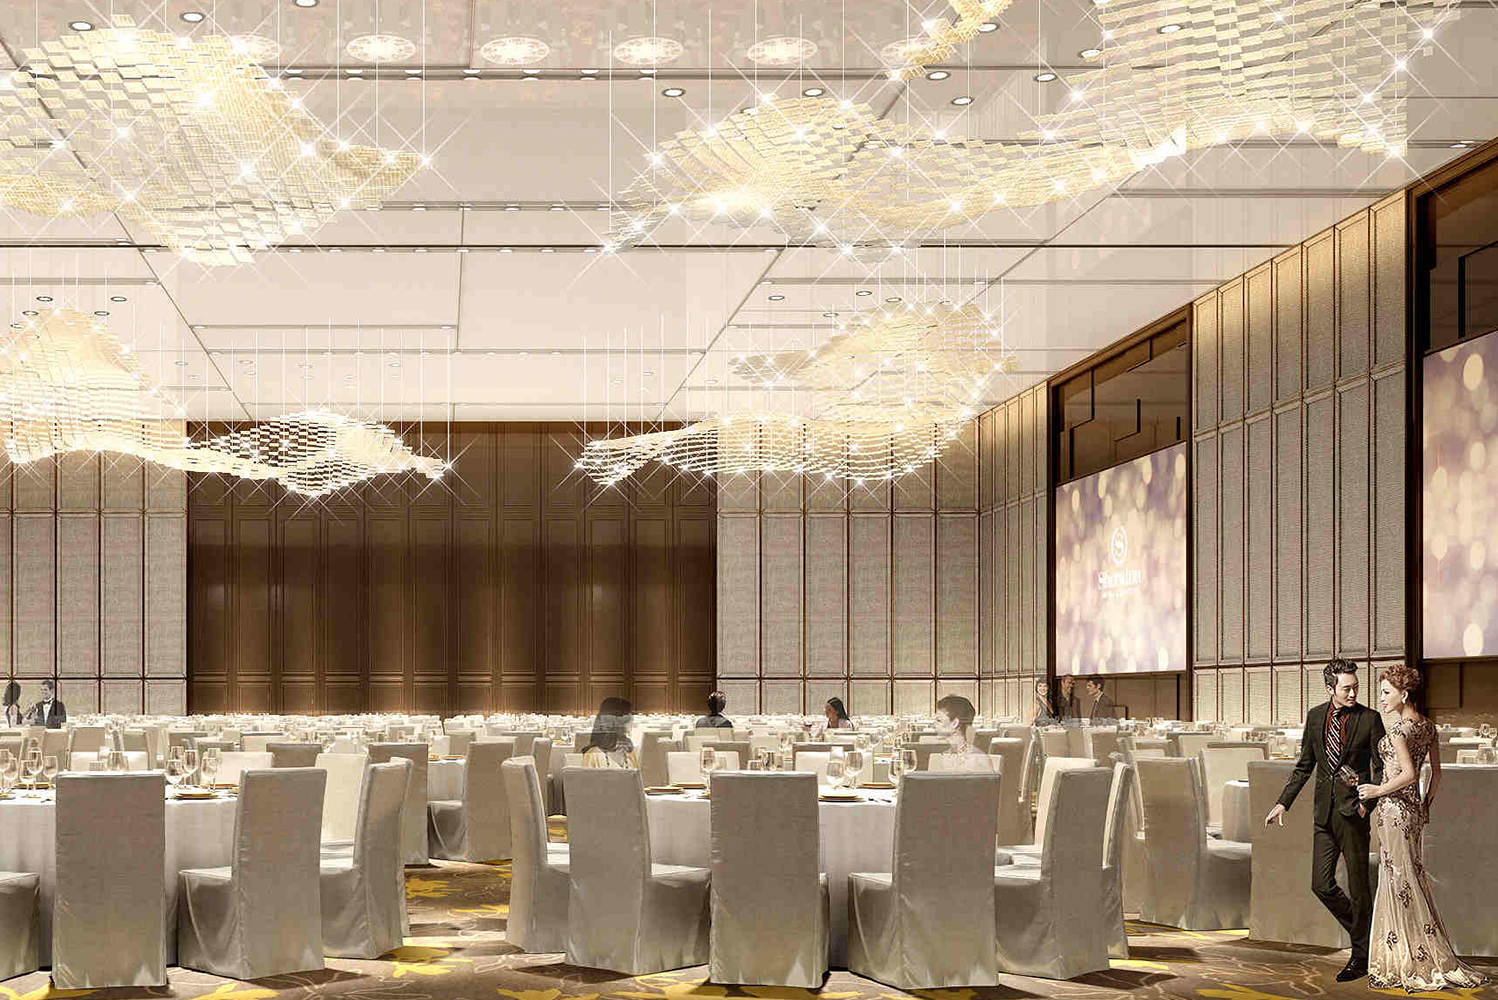 The hotel will have 11 flexible meeting and event spaces, including an Imperial Grand Ballroom .